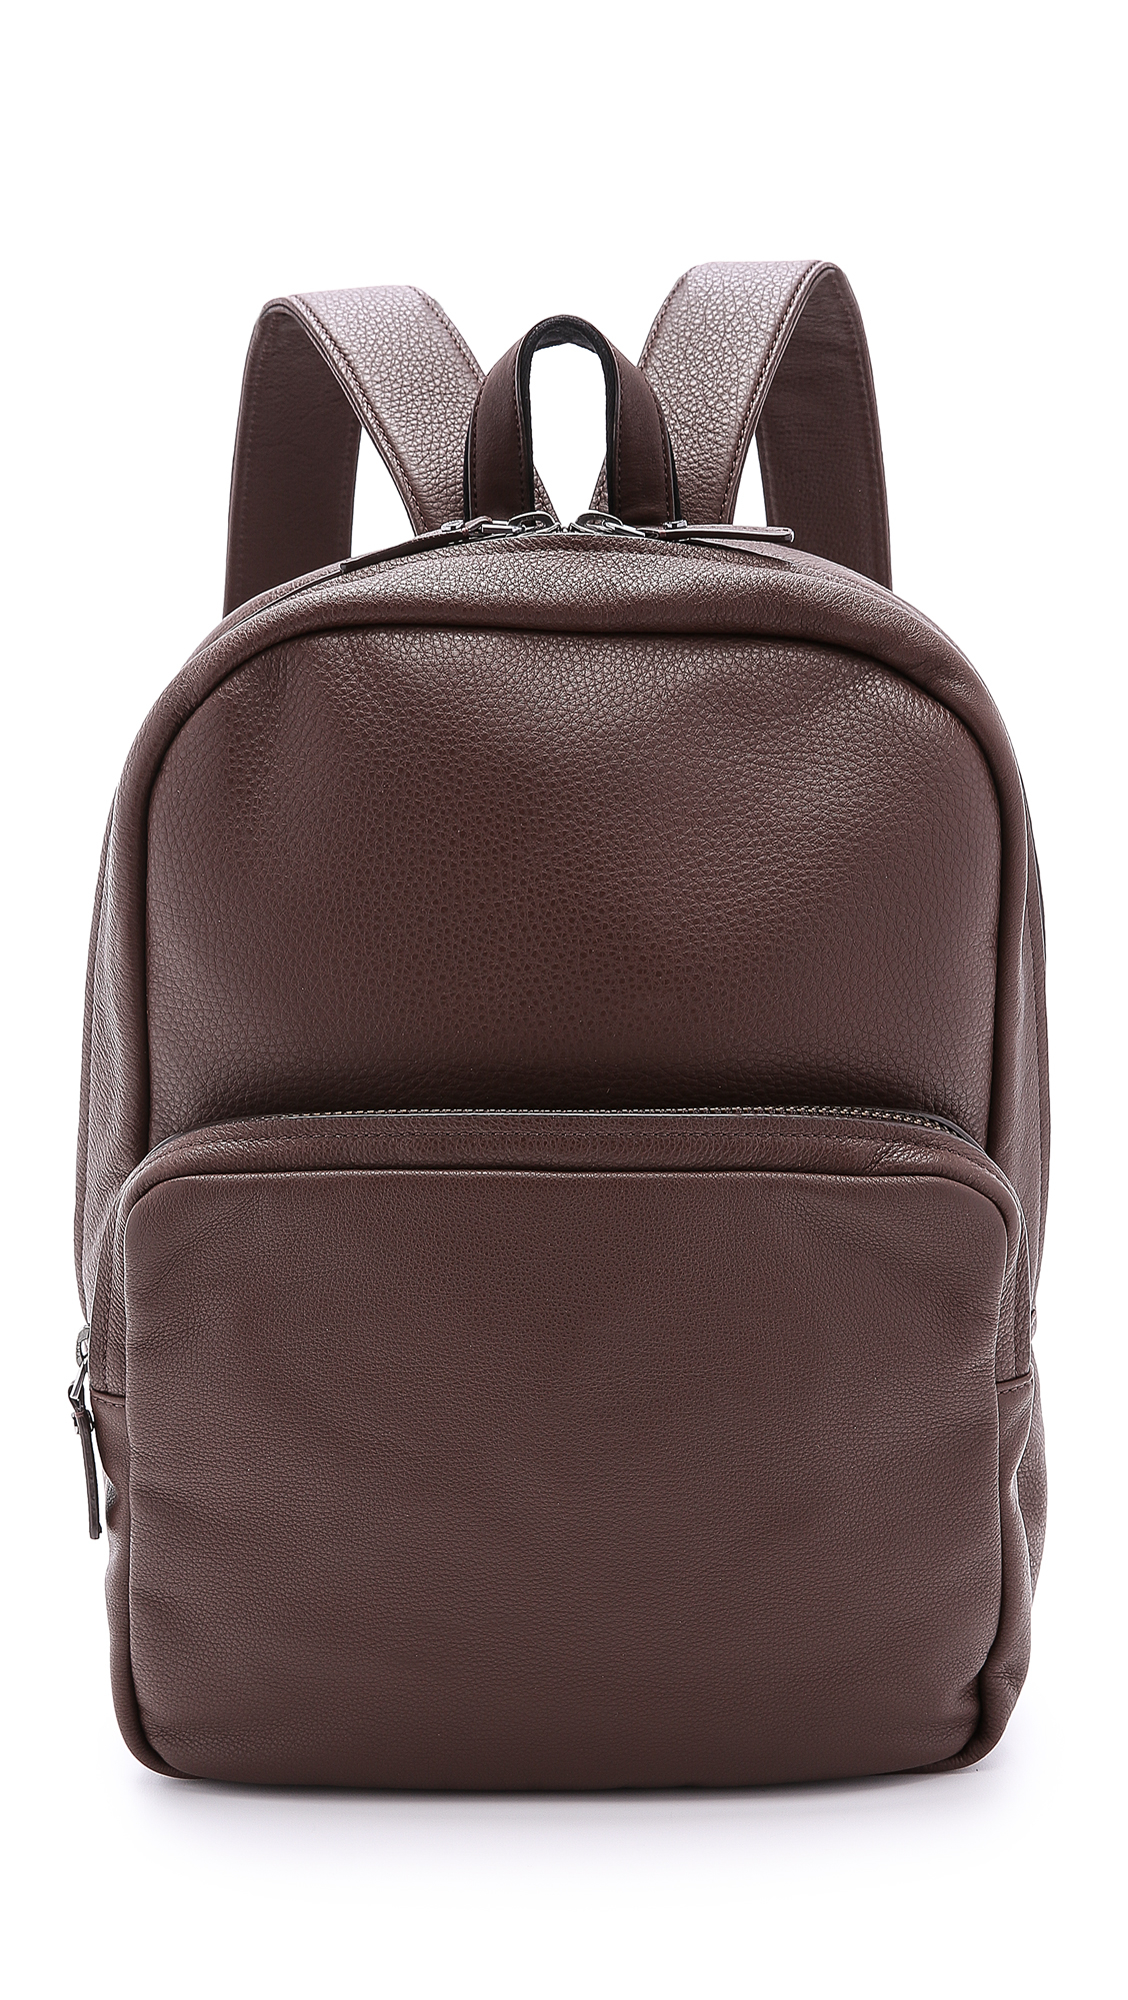 Rolf S Nyc Marc By Marc Jacobs Classic Leather Backpack In Brown For